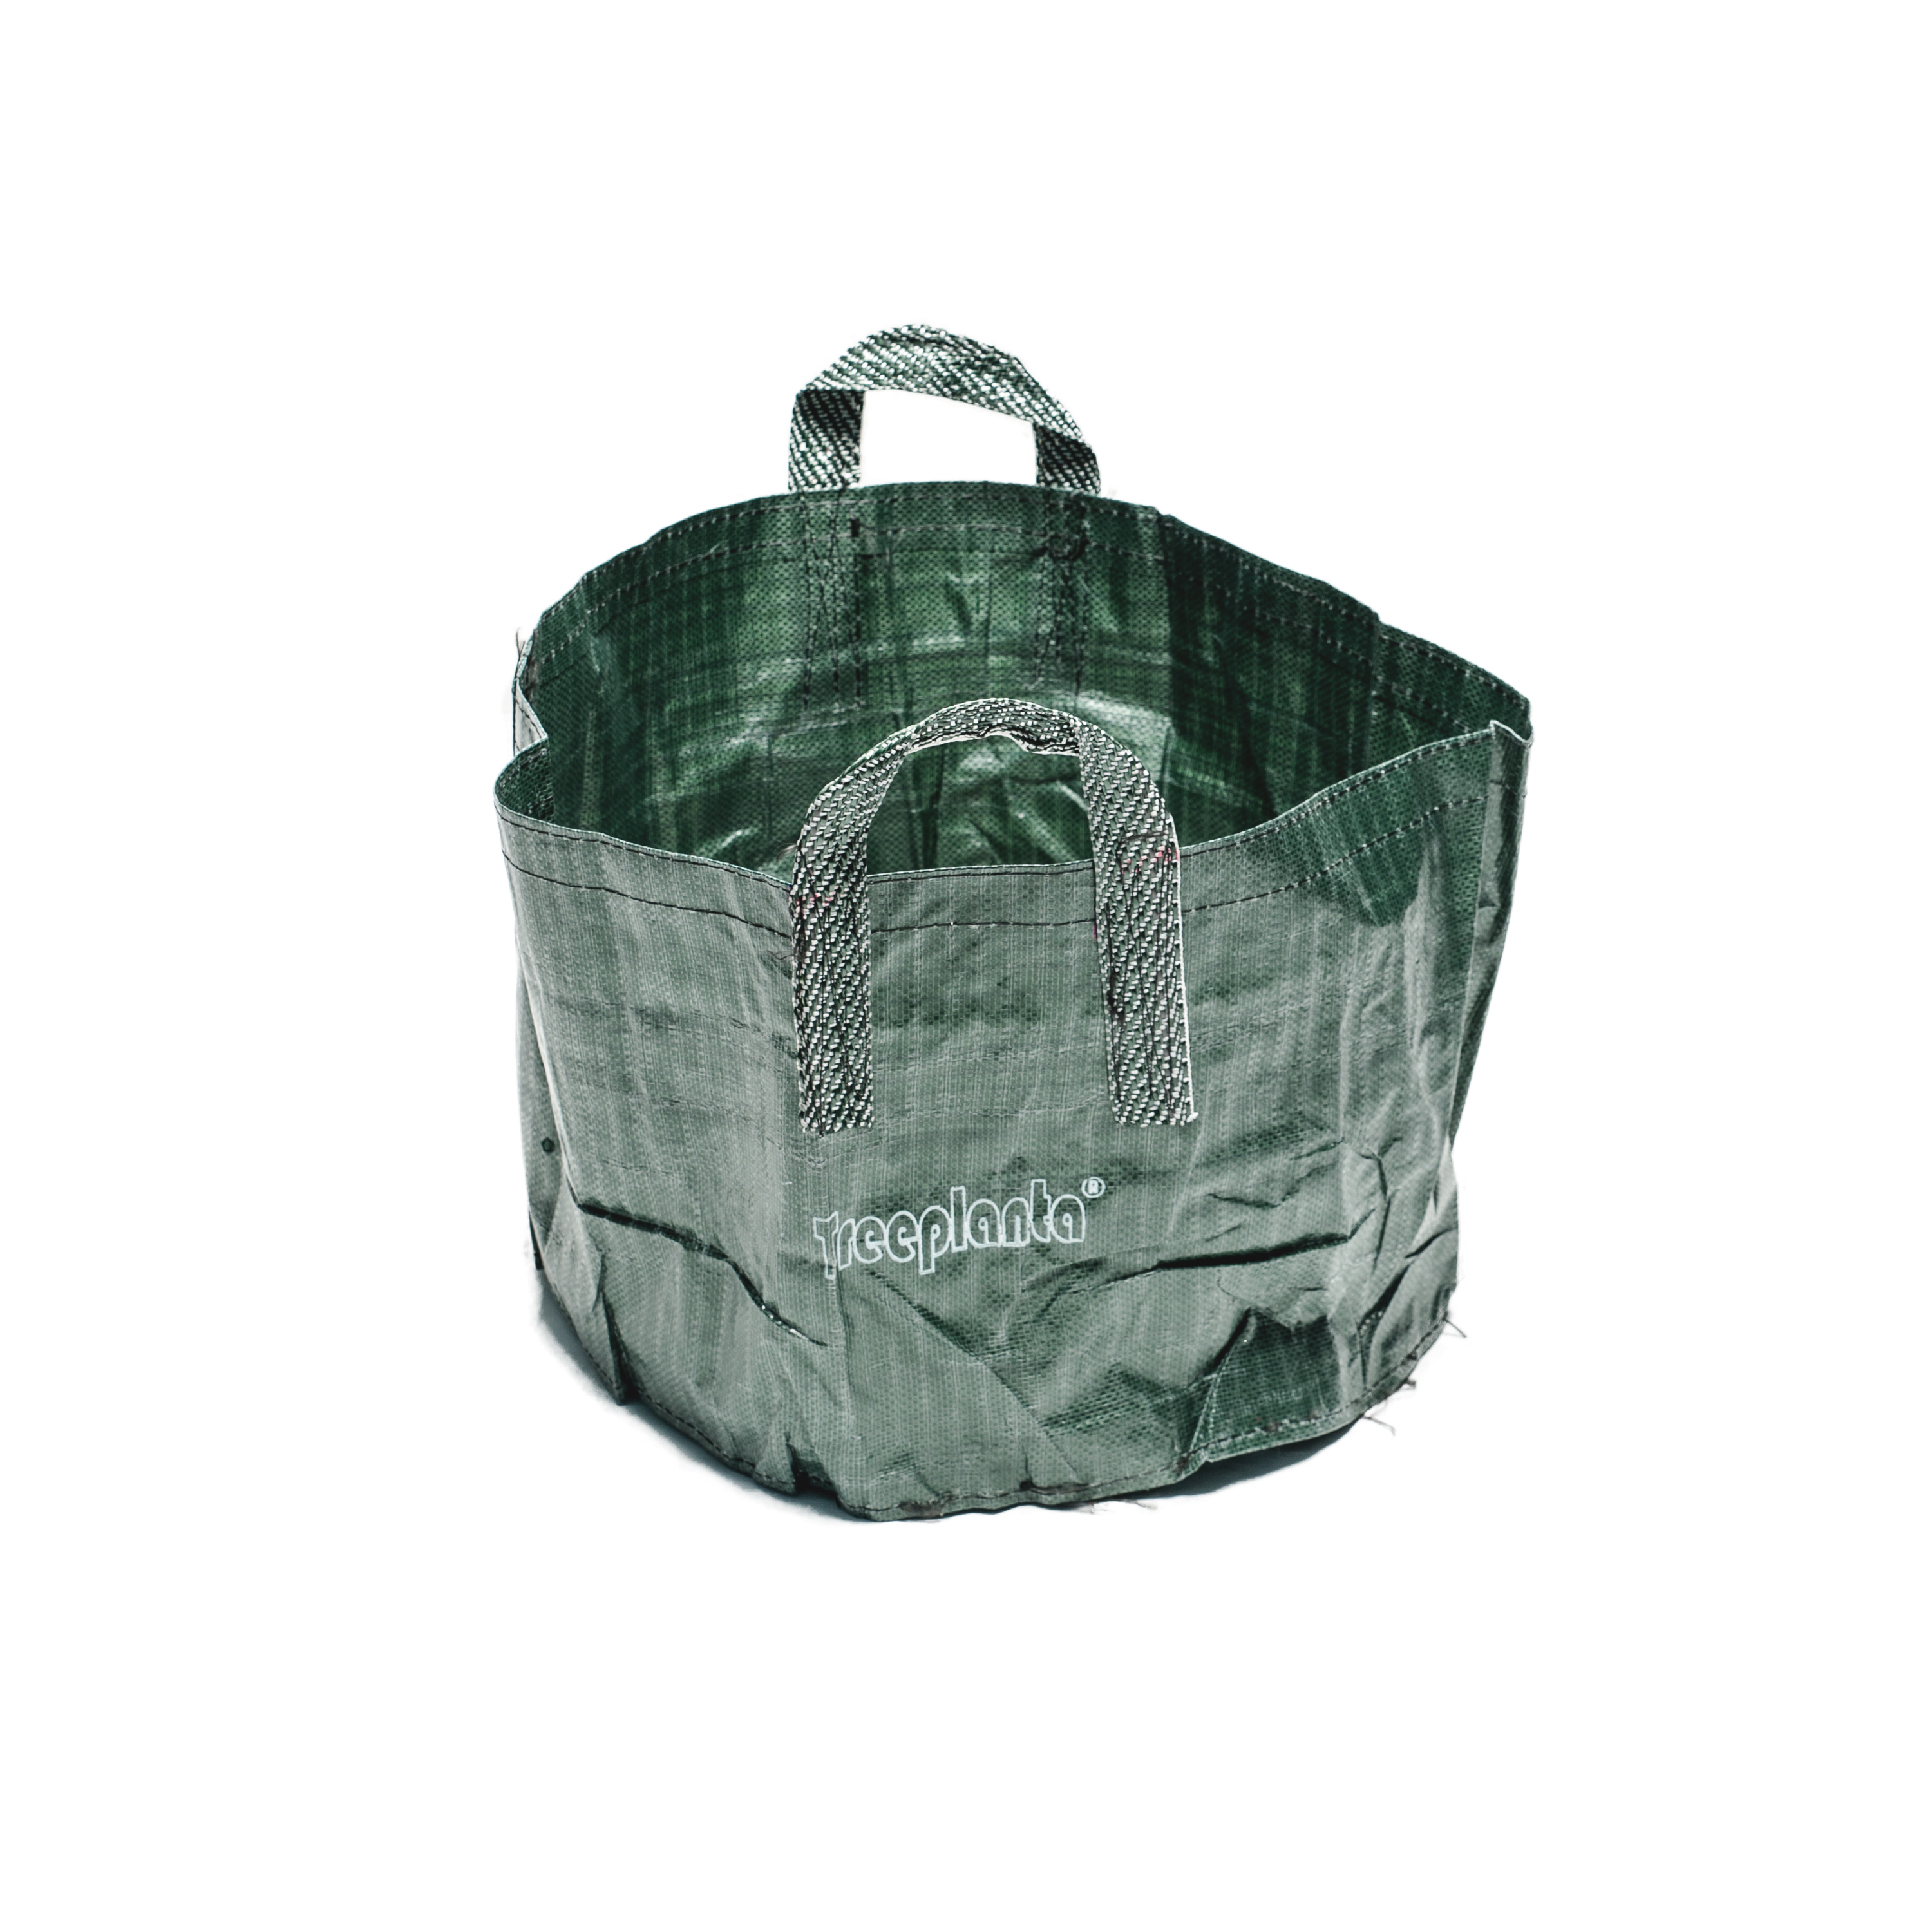 Treeplanta Container Bags